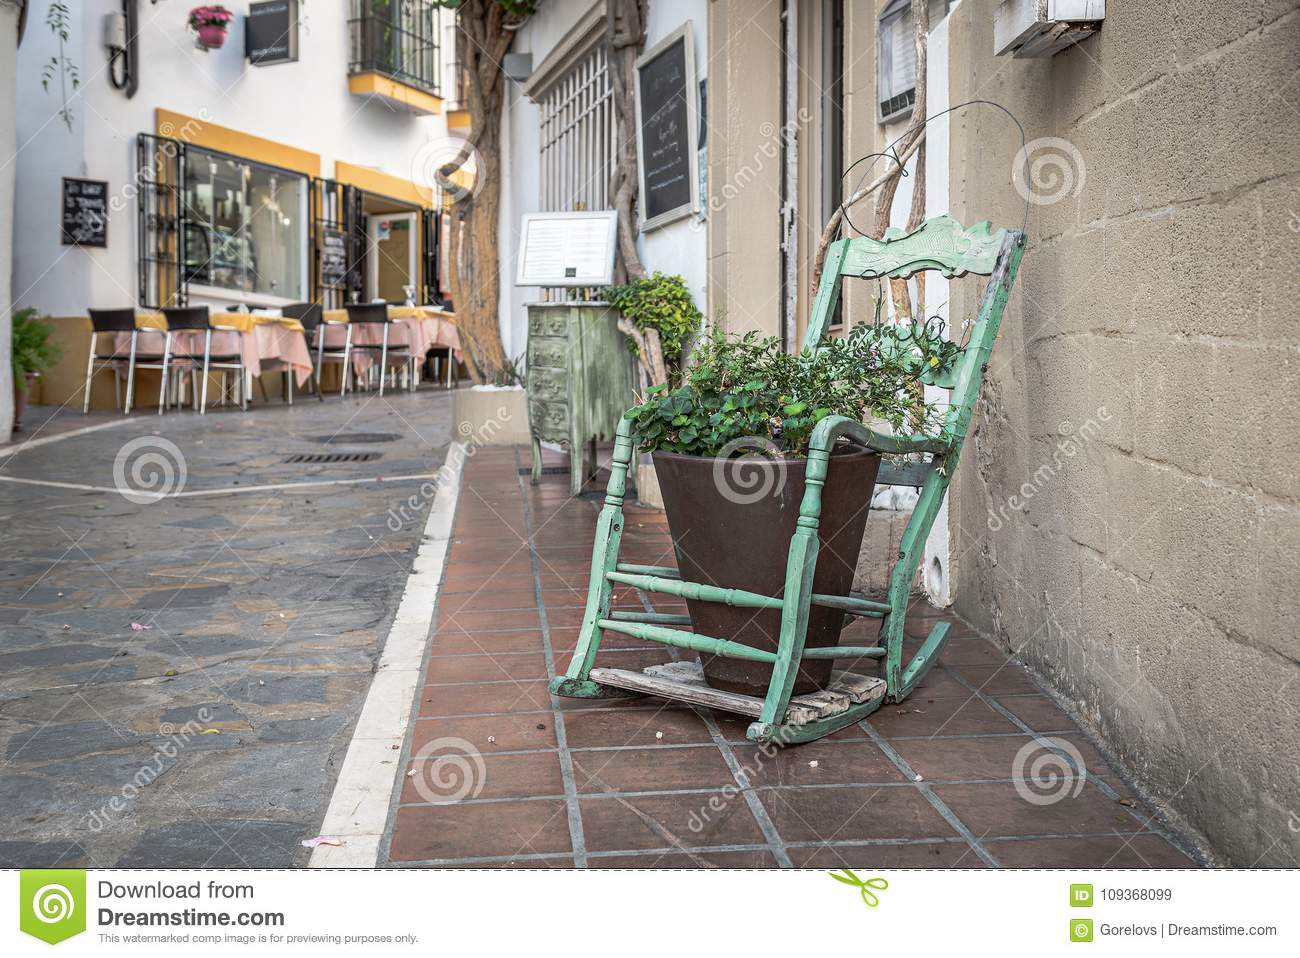 Download Old Vintage Wooden Rocking Chair As A Decoration Element For  Flower Pot Stock Image